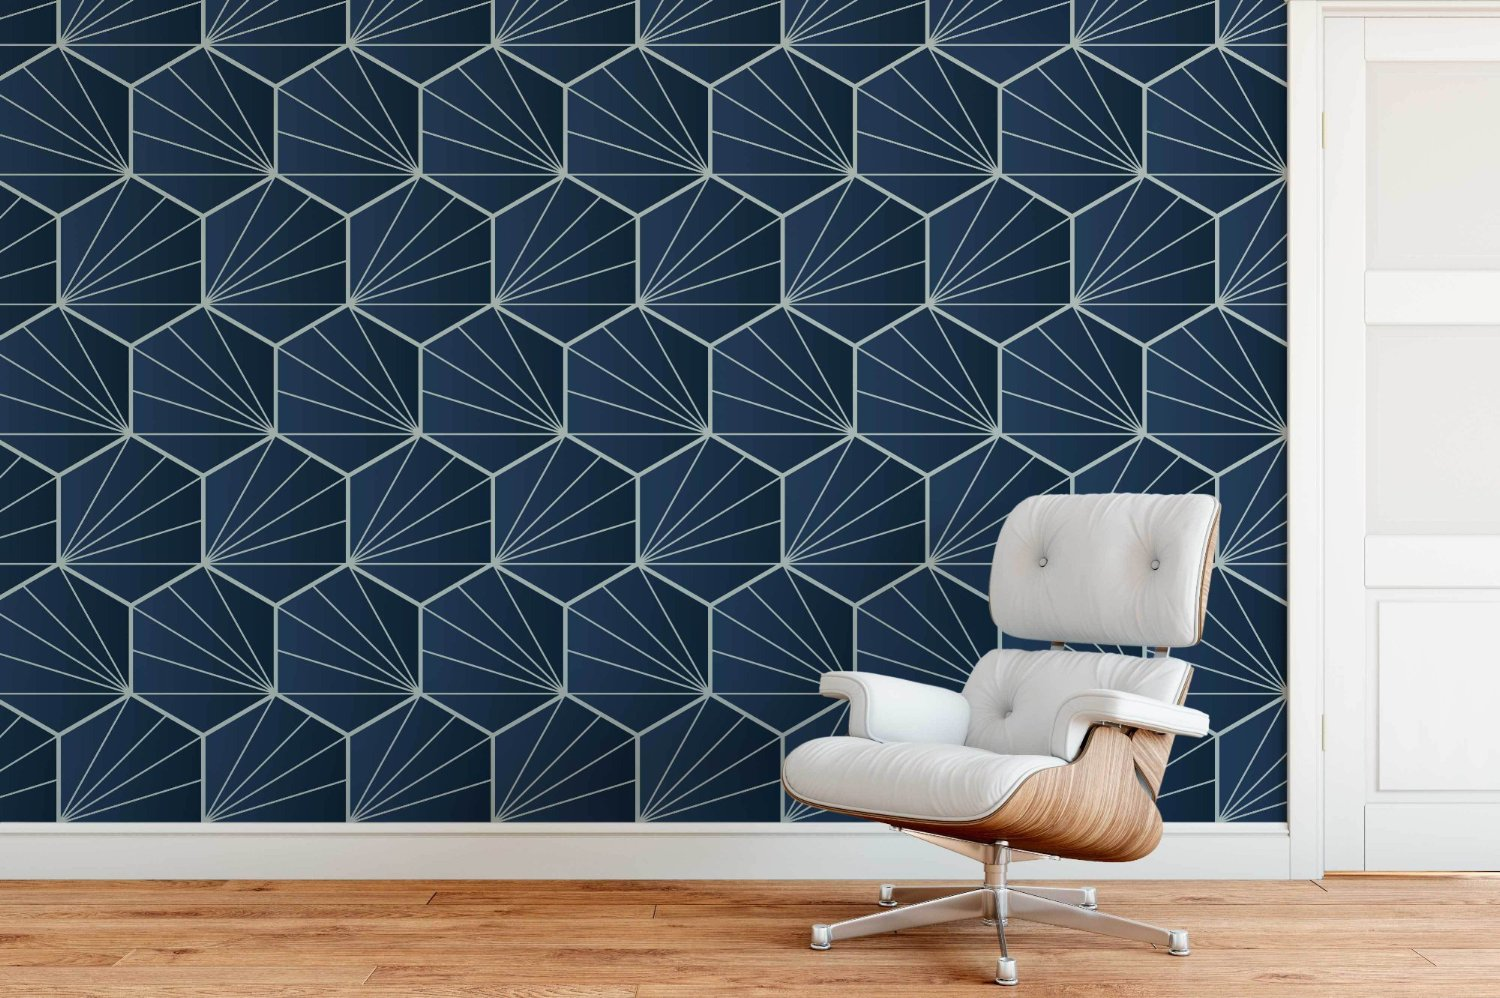 Hexagon Geometric Wallpaper Mural lounge